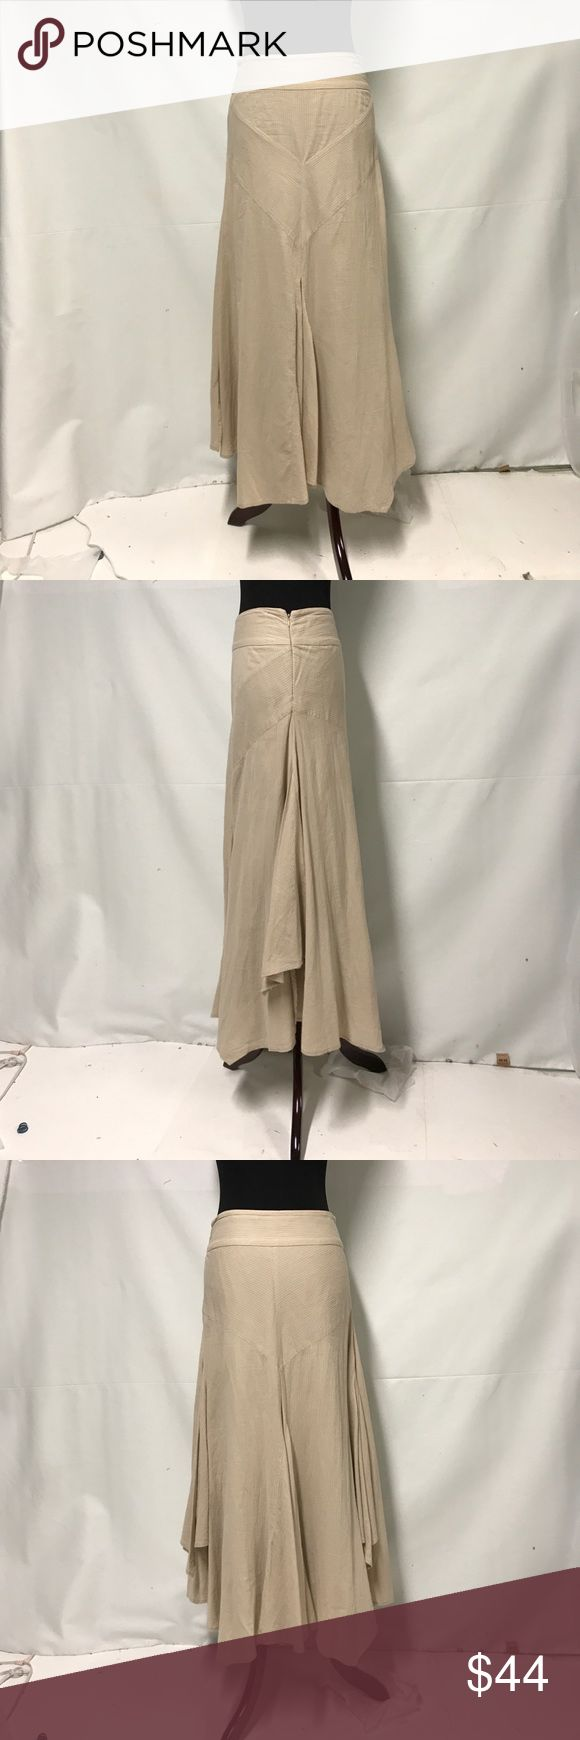 FREE PEOPLE tan maxi skirt w/ kickpleats The coolest skirt ever.. Fitted top with front and back kickpleats. Each side also has kickpleats but the hem length of the pleats I'd shorter than the front and back hem. It is a kind of boho fit and flare style. Side zip. There is a lining under about half the skirt. Free People Skirts Maxi